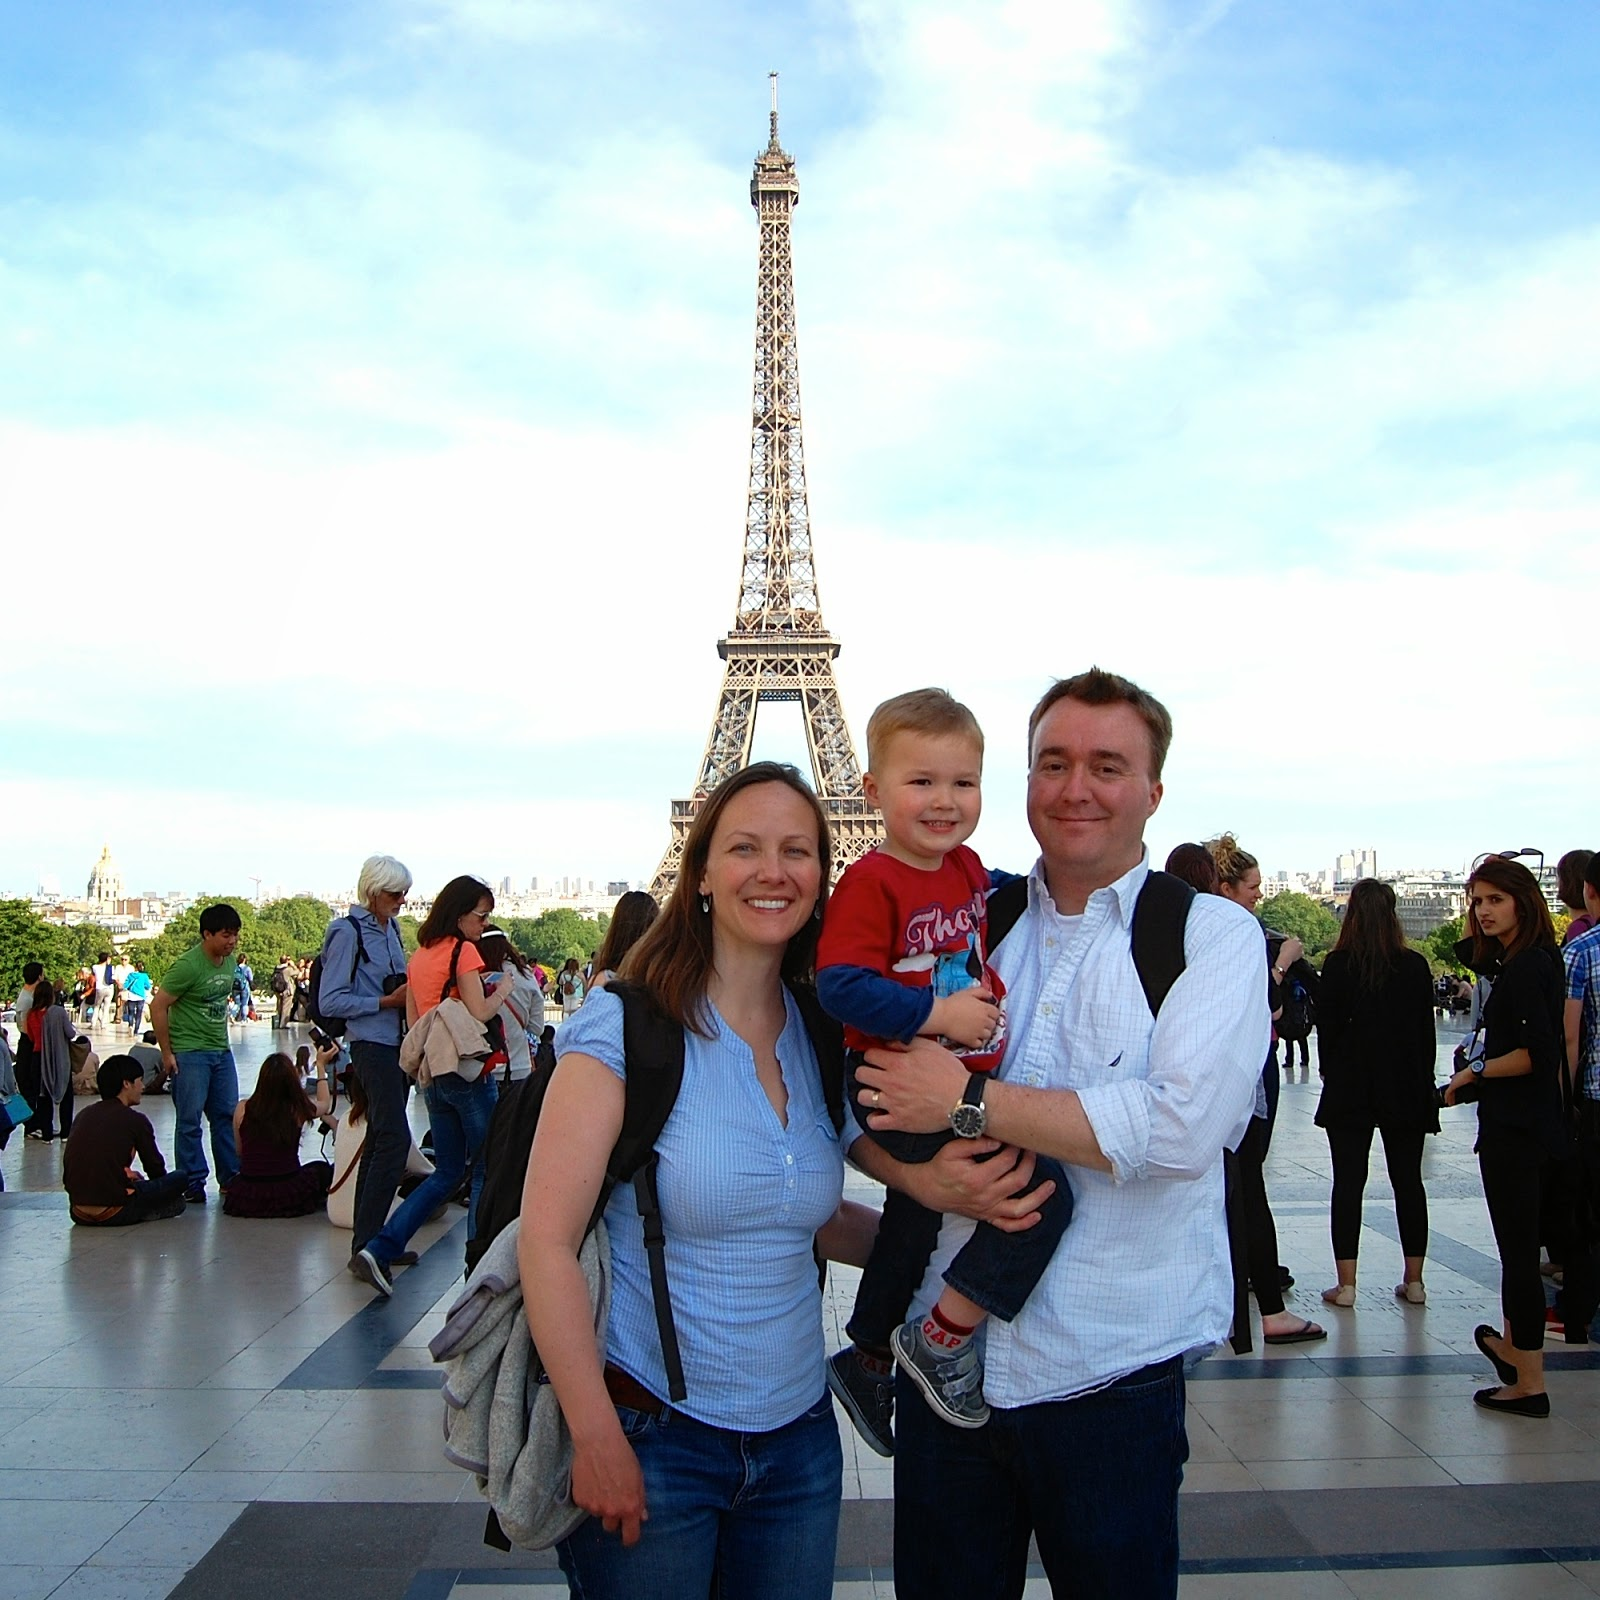 Family pic in front of the Eiffel Tower